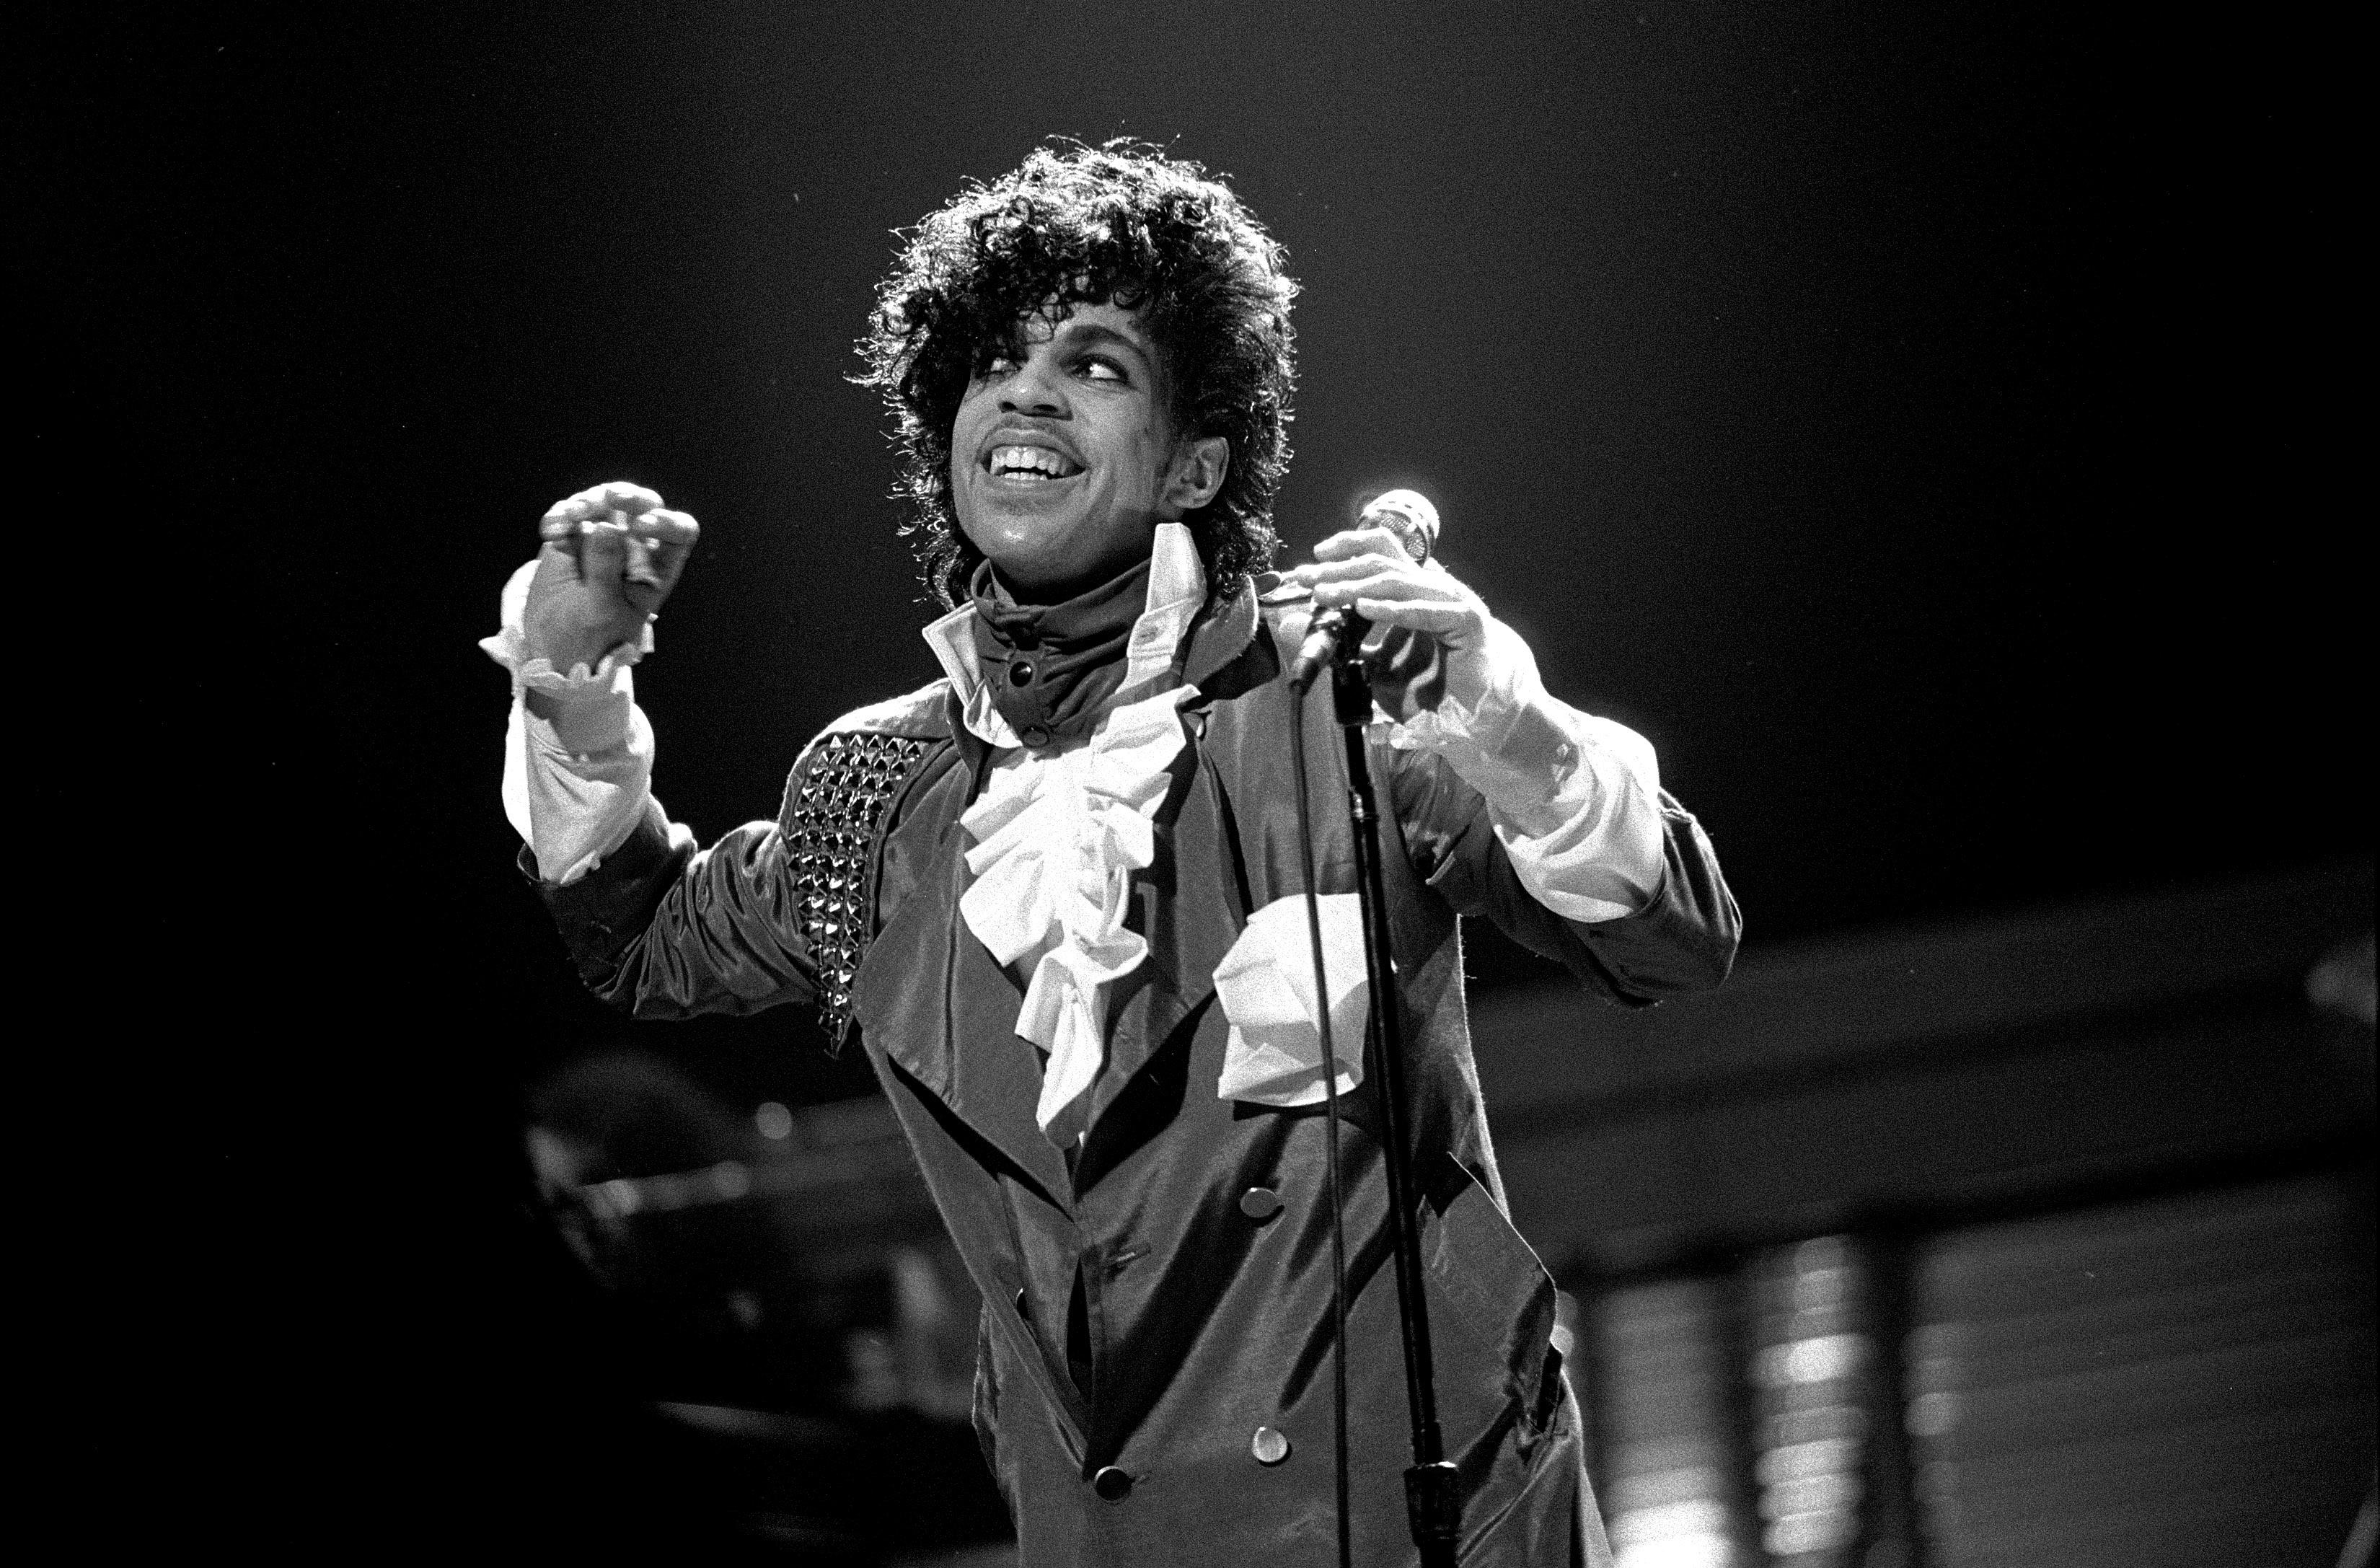 20 prince singer hd wallpapers backgrounds wallpaper - Prince wallpaper ...